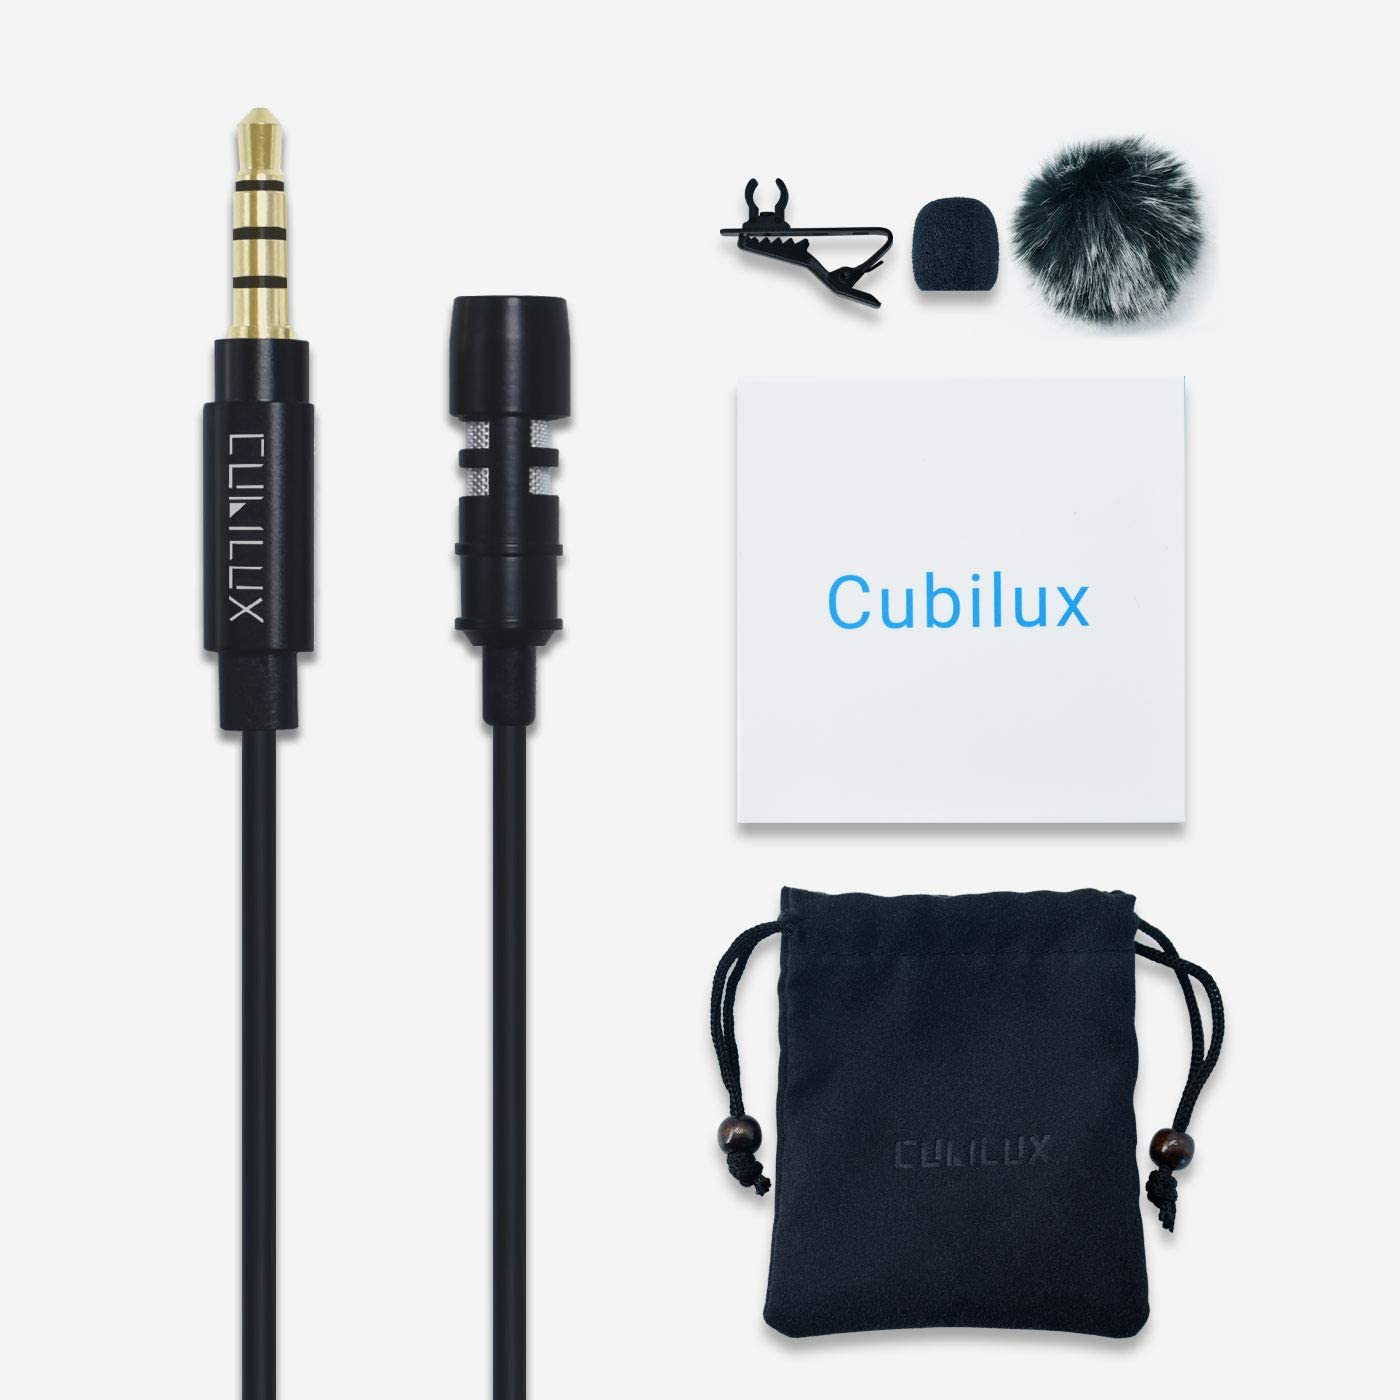 5ft with Clear Voice for Recording//Interviewing//Youtuber//Vlogger Android Smartphone Samsung S10 Cubilux 3.5mm Clip-on Omnidirectional MIC Compatible for iPhone iPad MacBook Lavalier Lapel Microphone